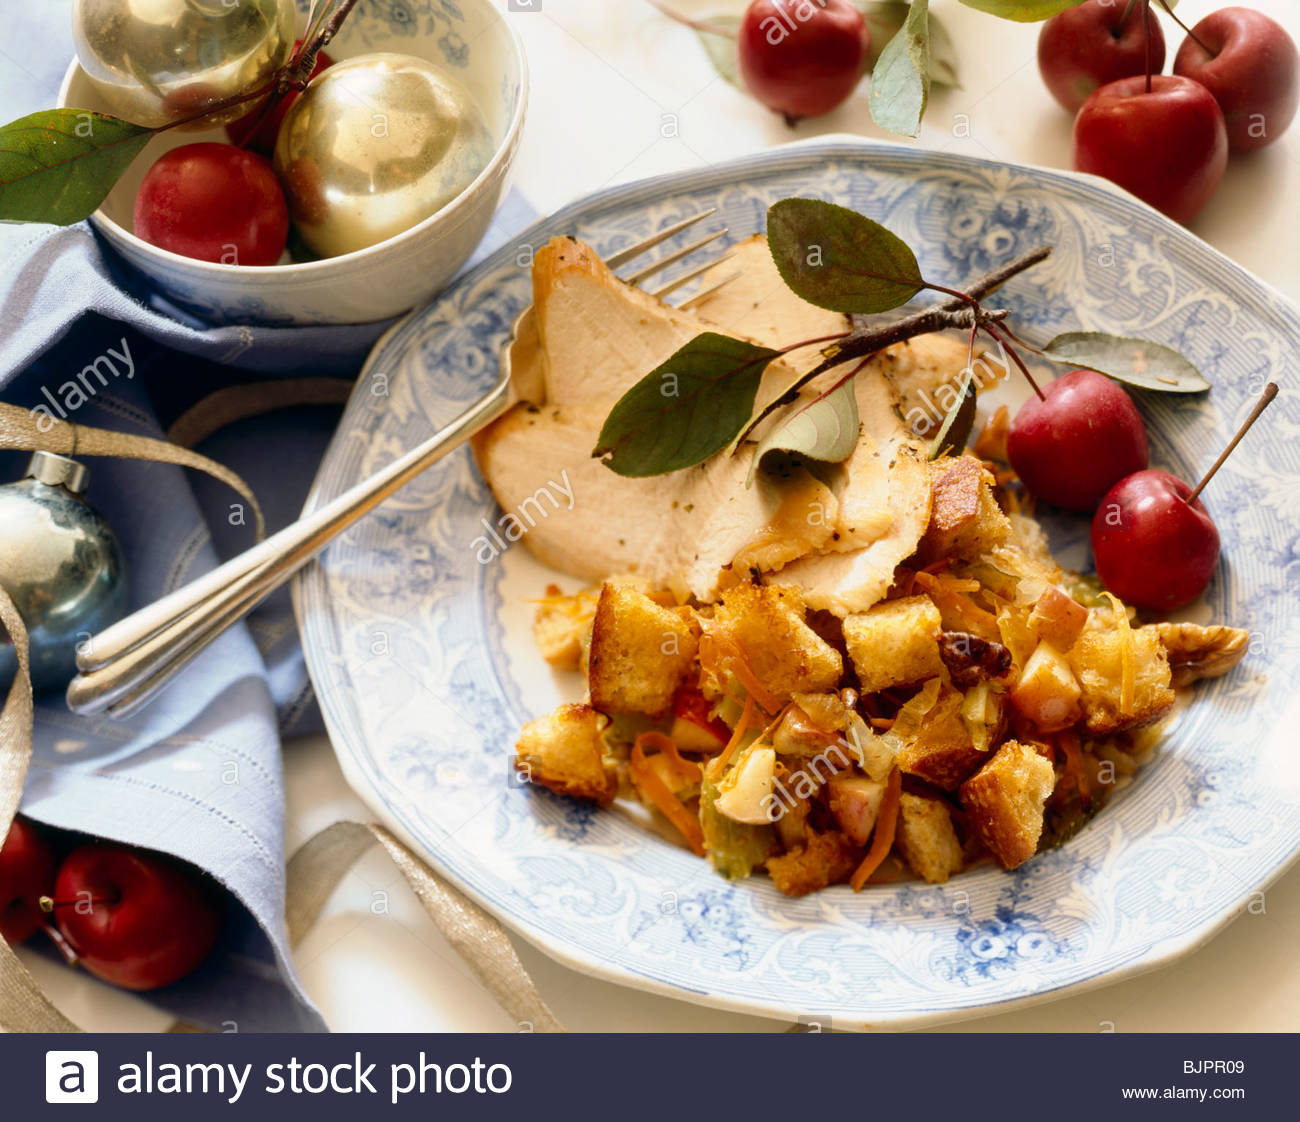 Holiday Dinner Plate; Sliced Turkey with Bread Stuffing; Christmas Decorations & Holiday Dinner Plate; Sliced Turkey with Bread Stuffing; Christmas ...